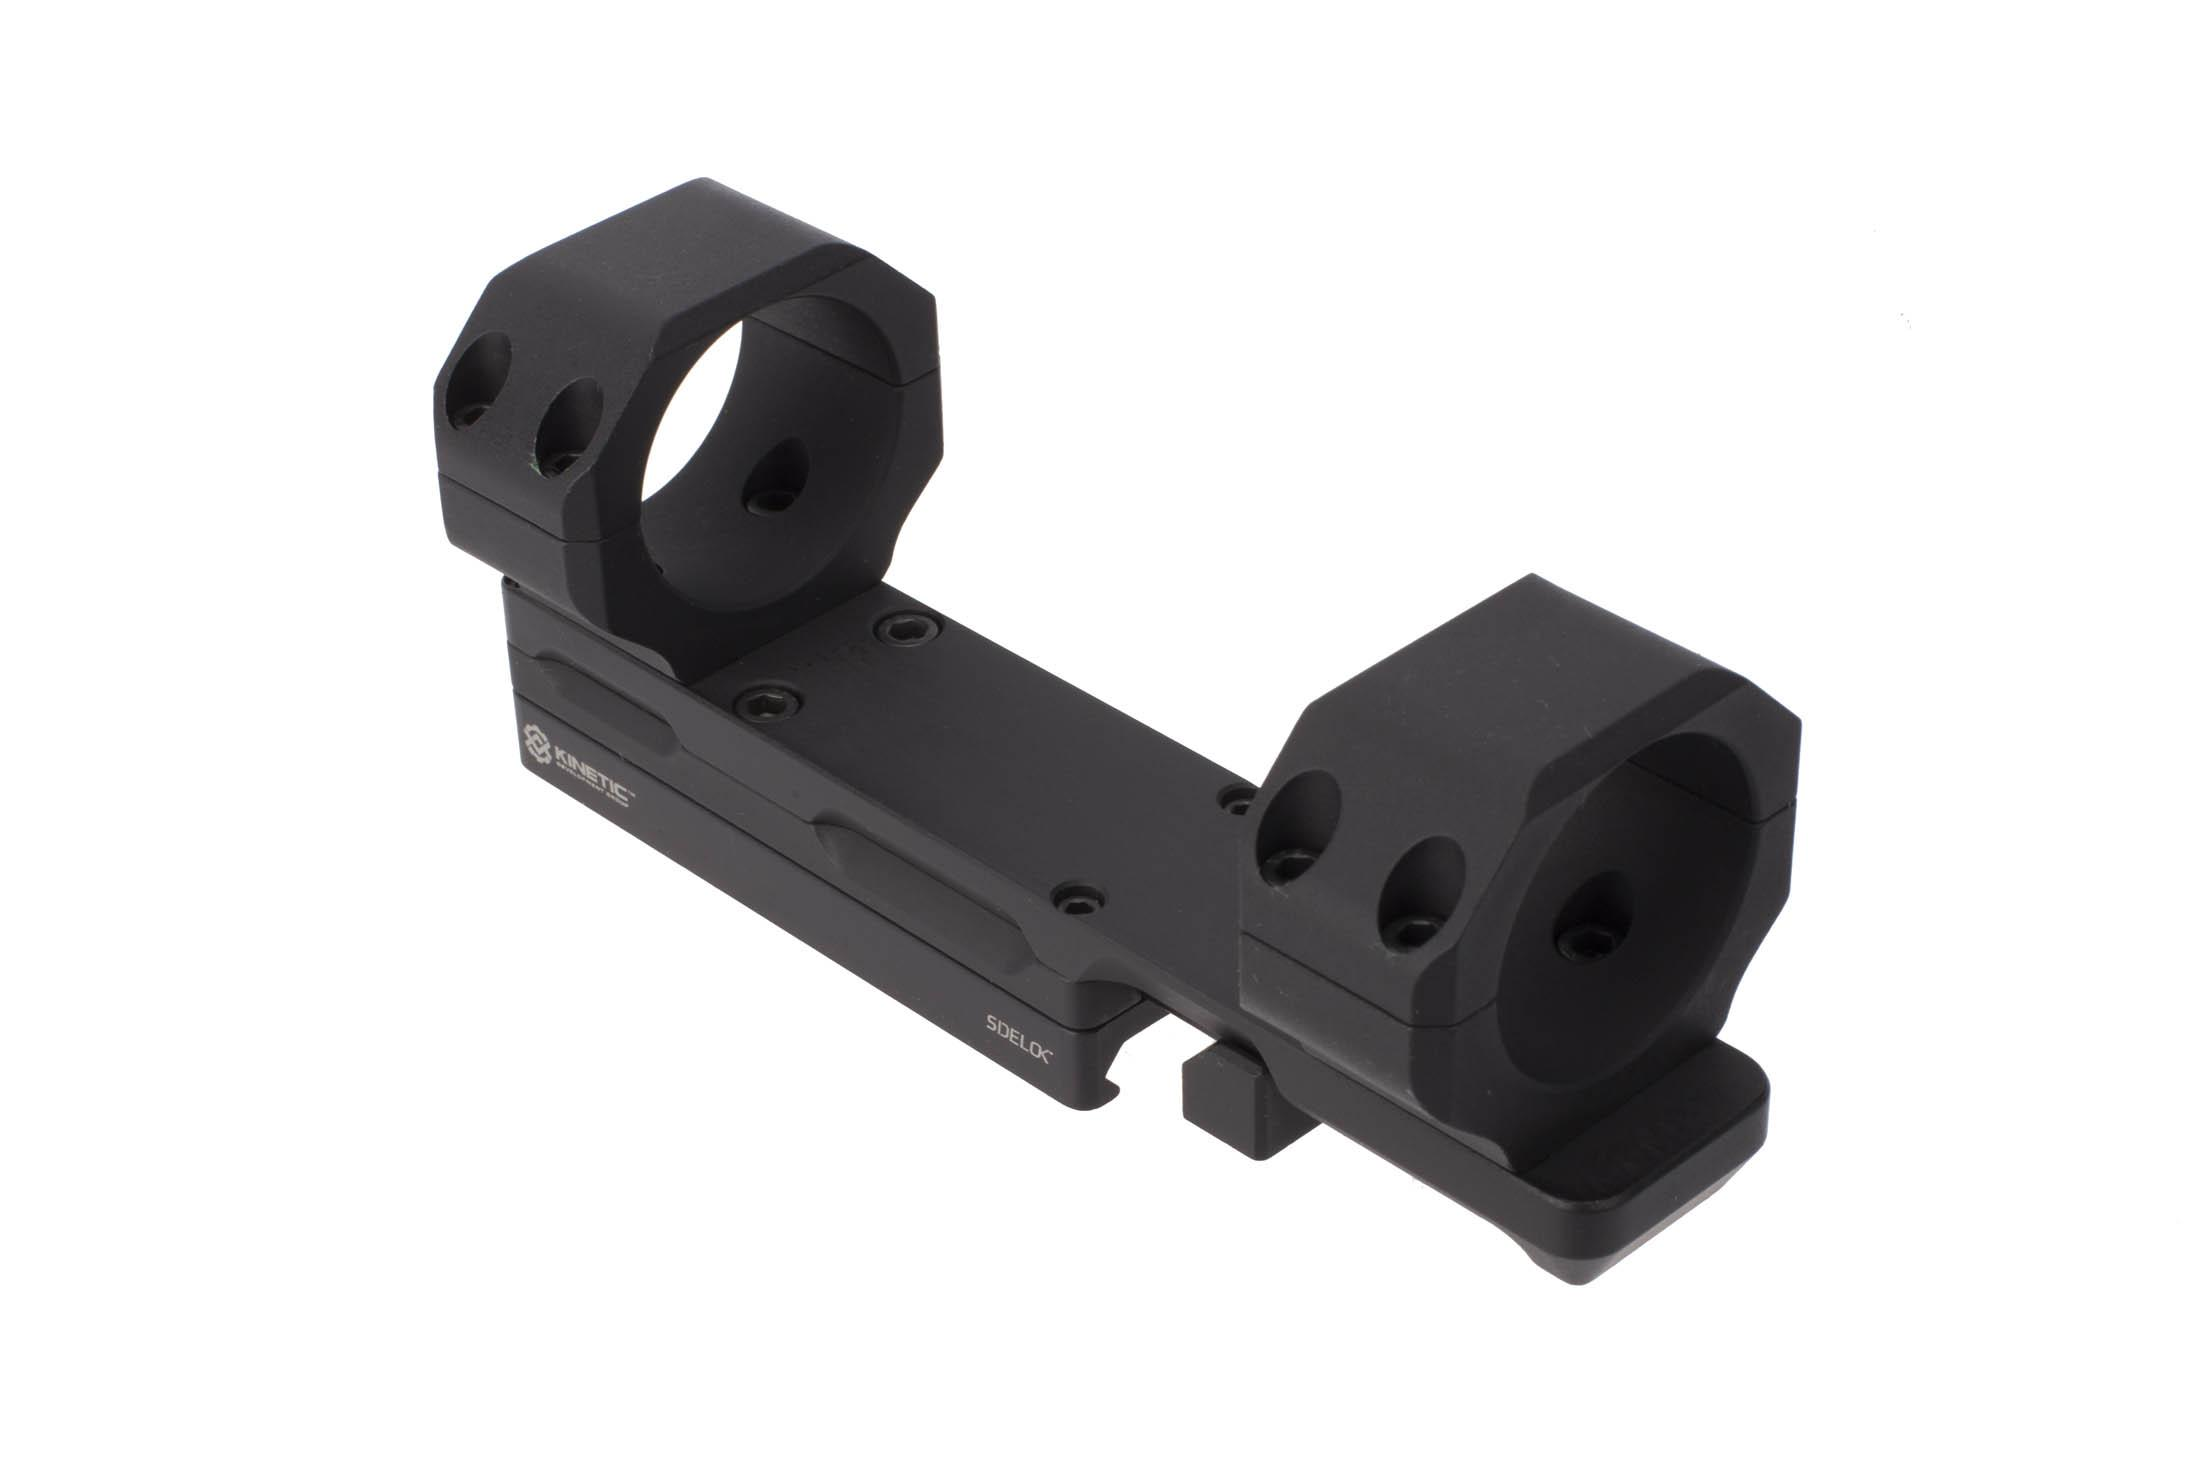 Kinetic Development Group SIDELOK 34mm Modular Optic Mount for 34mm rifle scopes